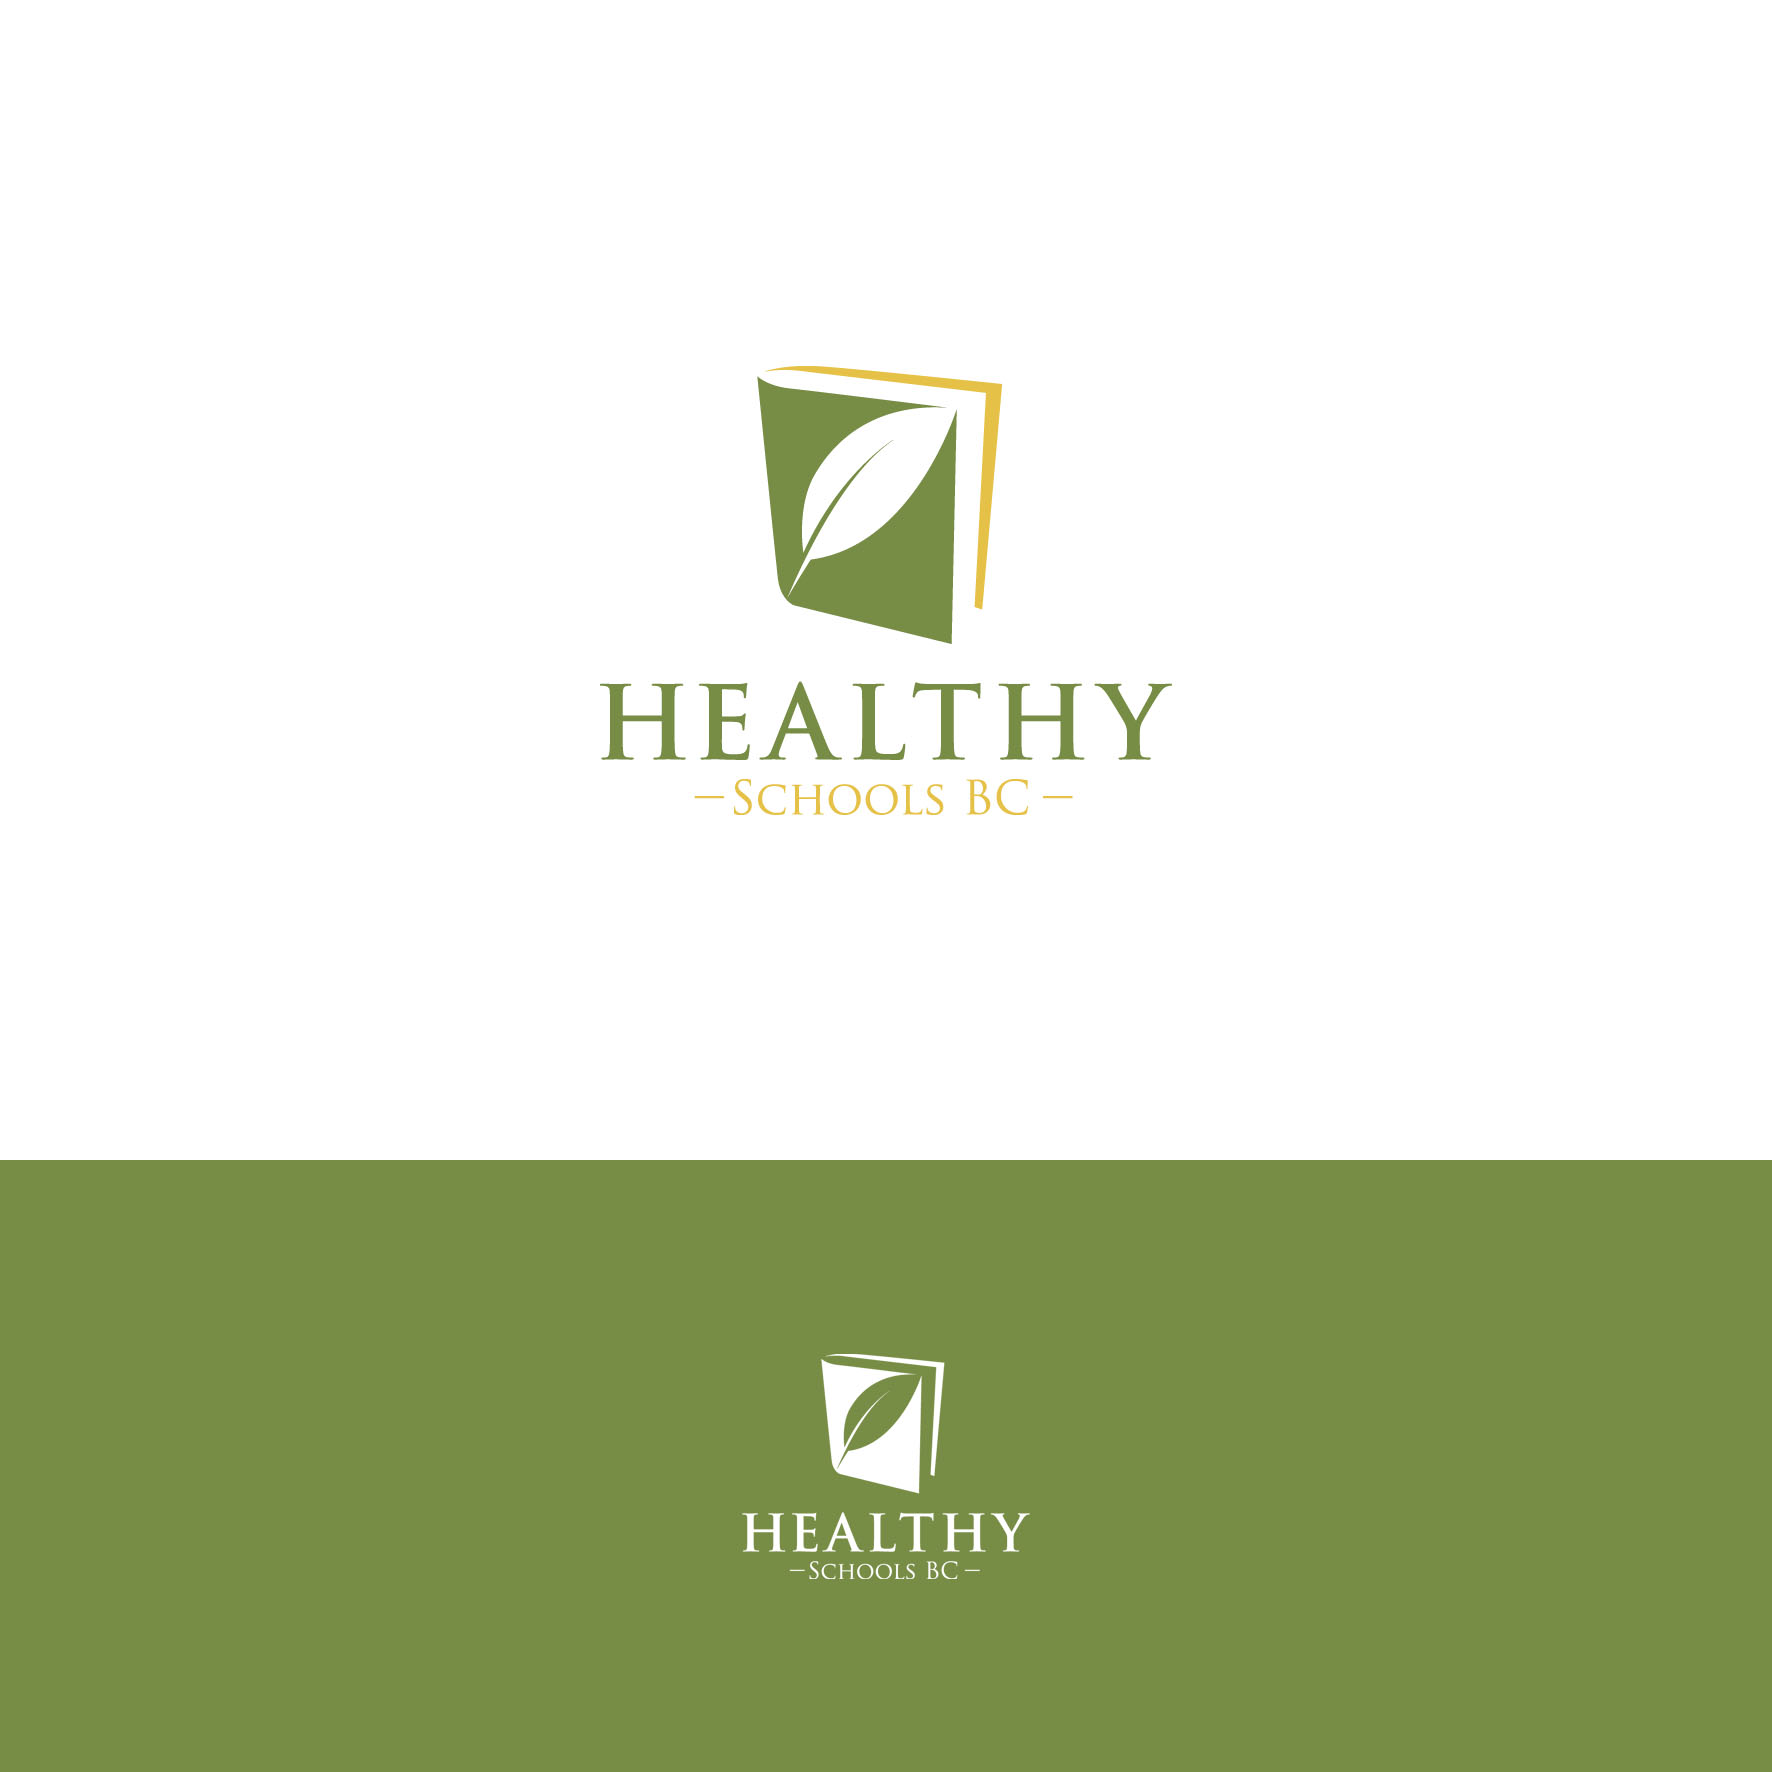 Logo Design by tanganpanas - Entry No. 182 in the Logo Design Contest SImple, Creative and Clean Logo Design for Healthy Schools British Columbia, Canada.